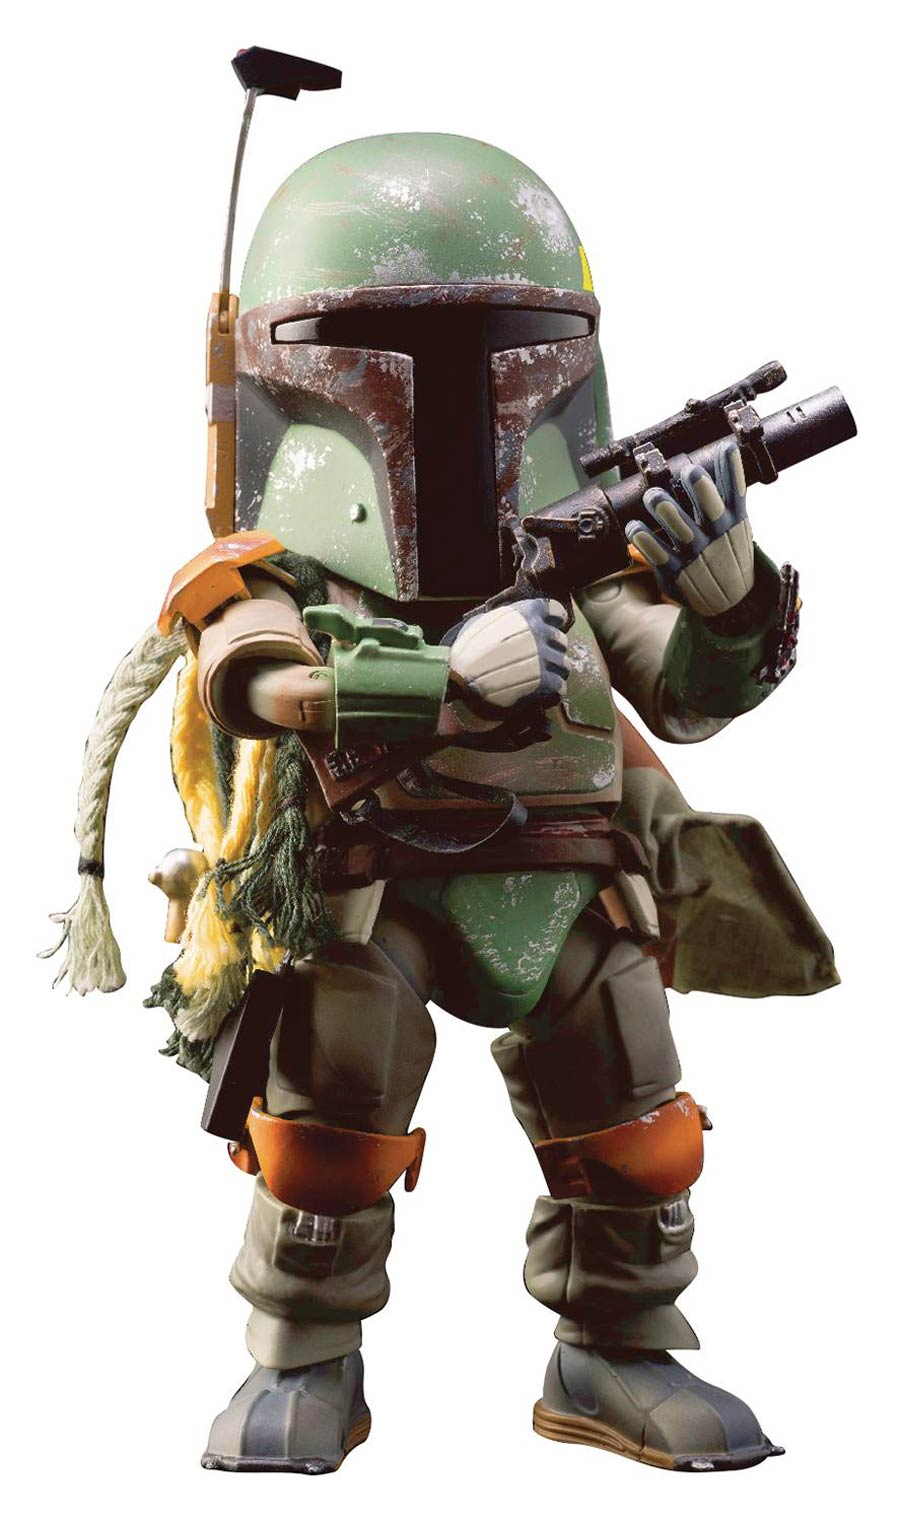 Star Wars Episode V The Empire Strikes Back EAA-020 Boba Fett Previews Exclusive Action Figure